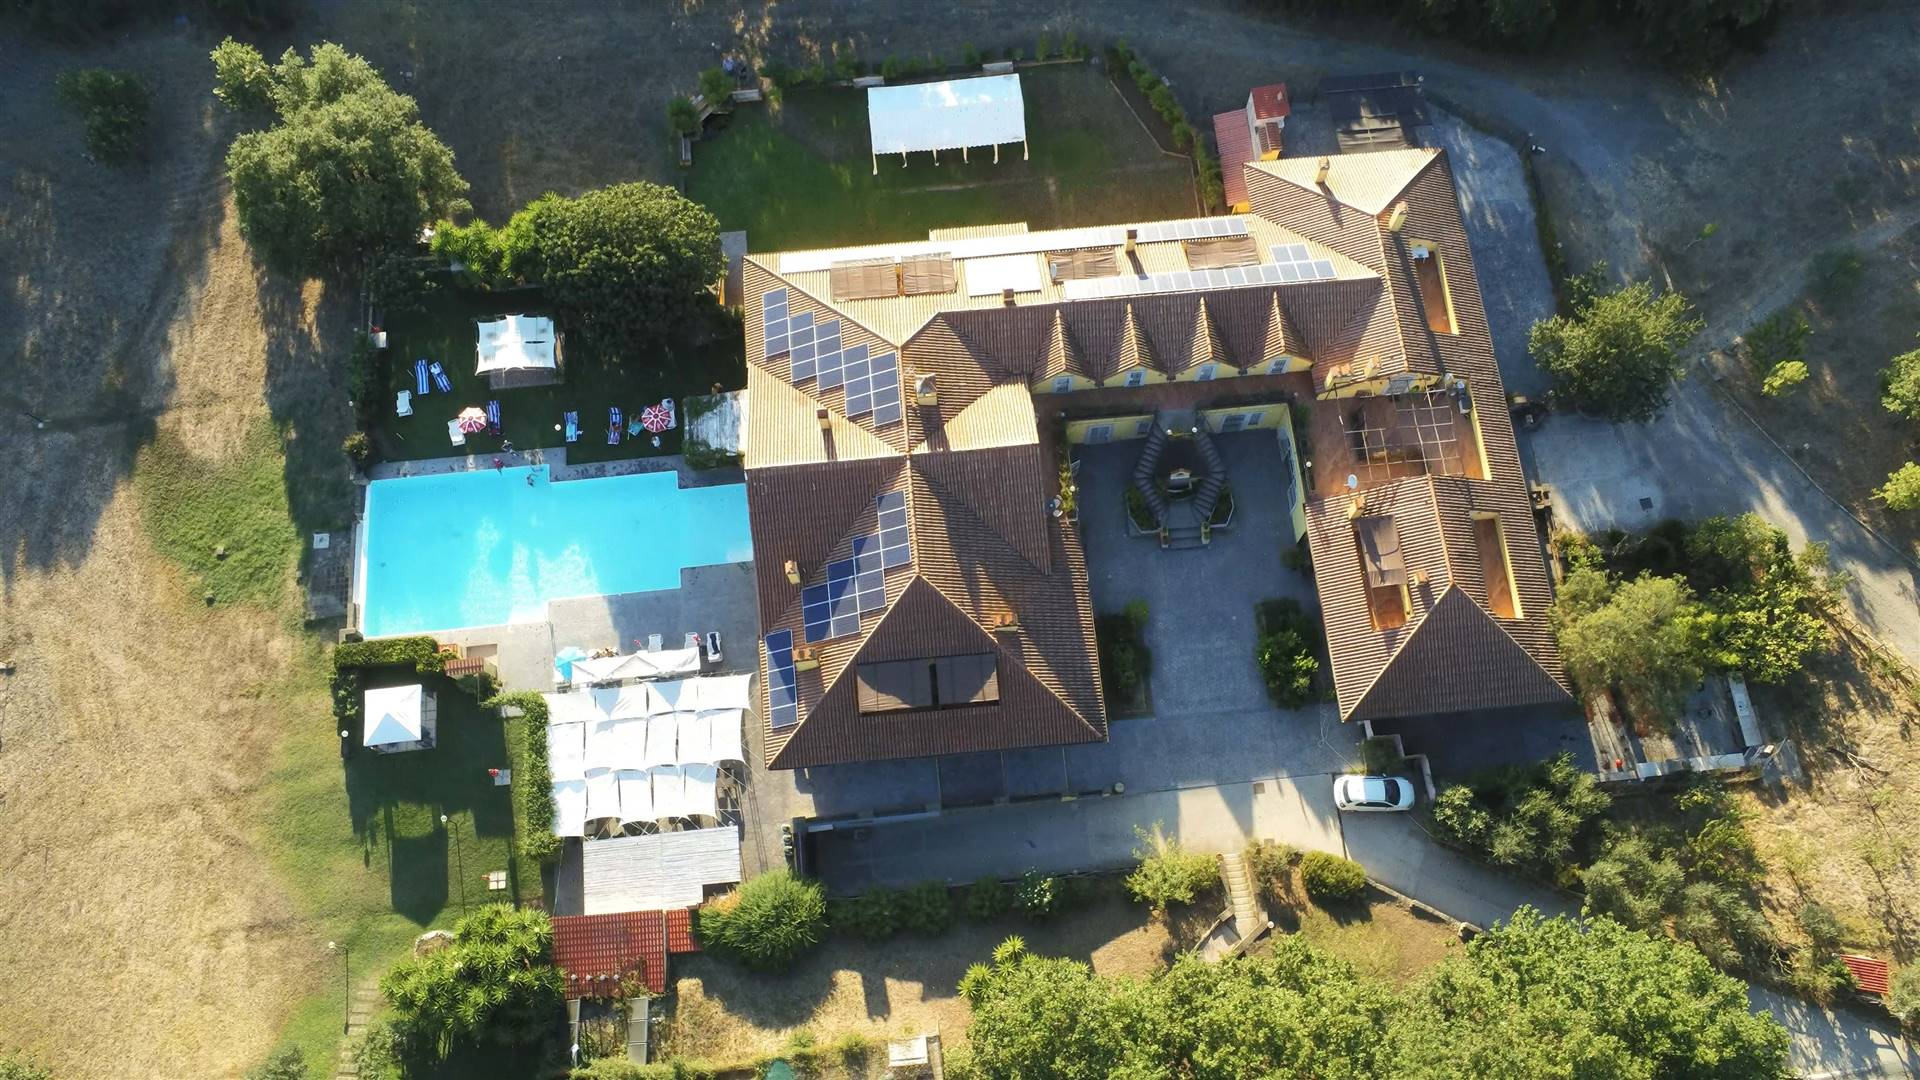 FIUMICINO, Farm holidays for sale of 2000 Sq. mt., Good condition, Heating Individual heating system, Energetic class: G, composed by: 1 Room, Separate kitchen, Garden Exclusive, Swimming pool,